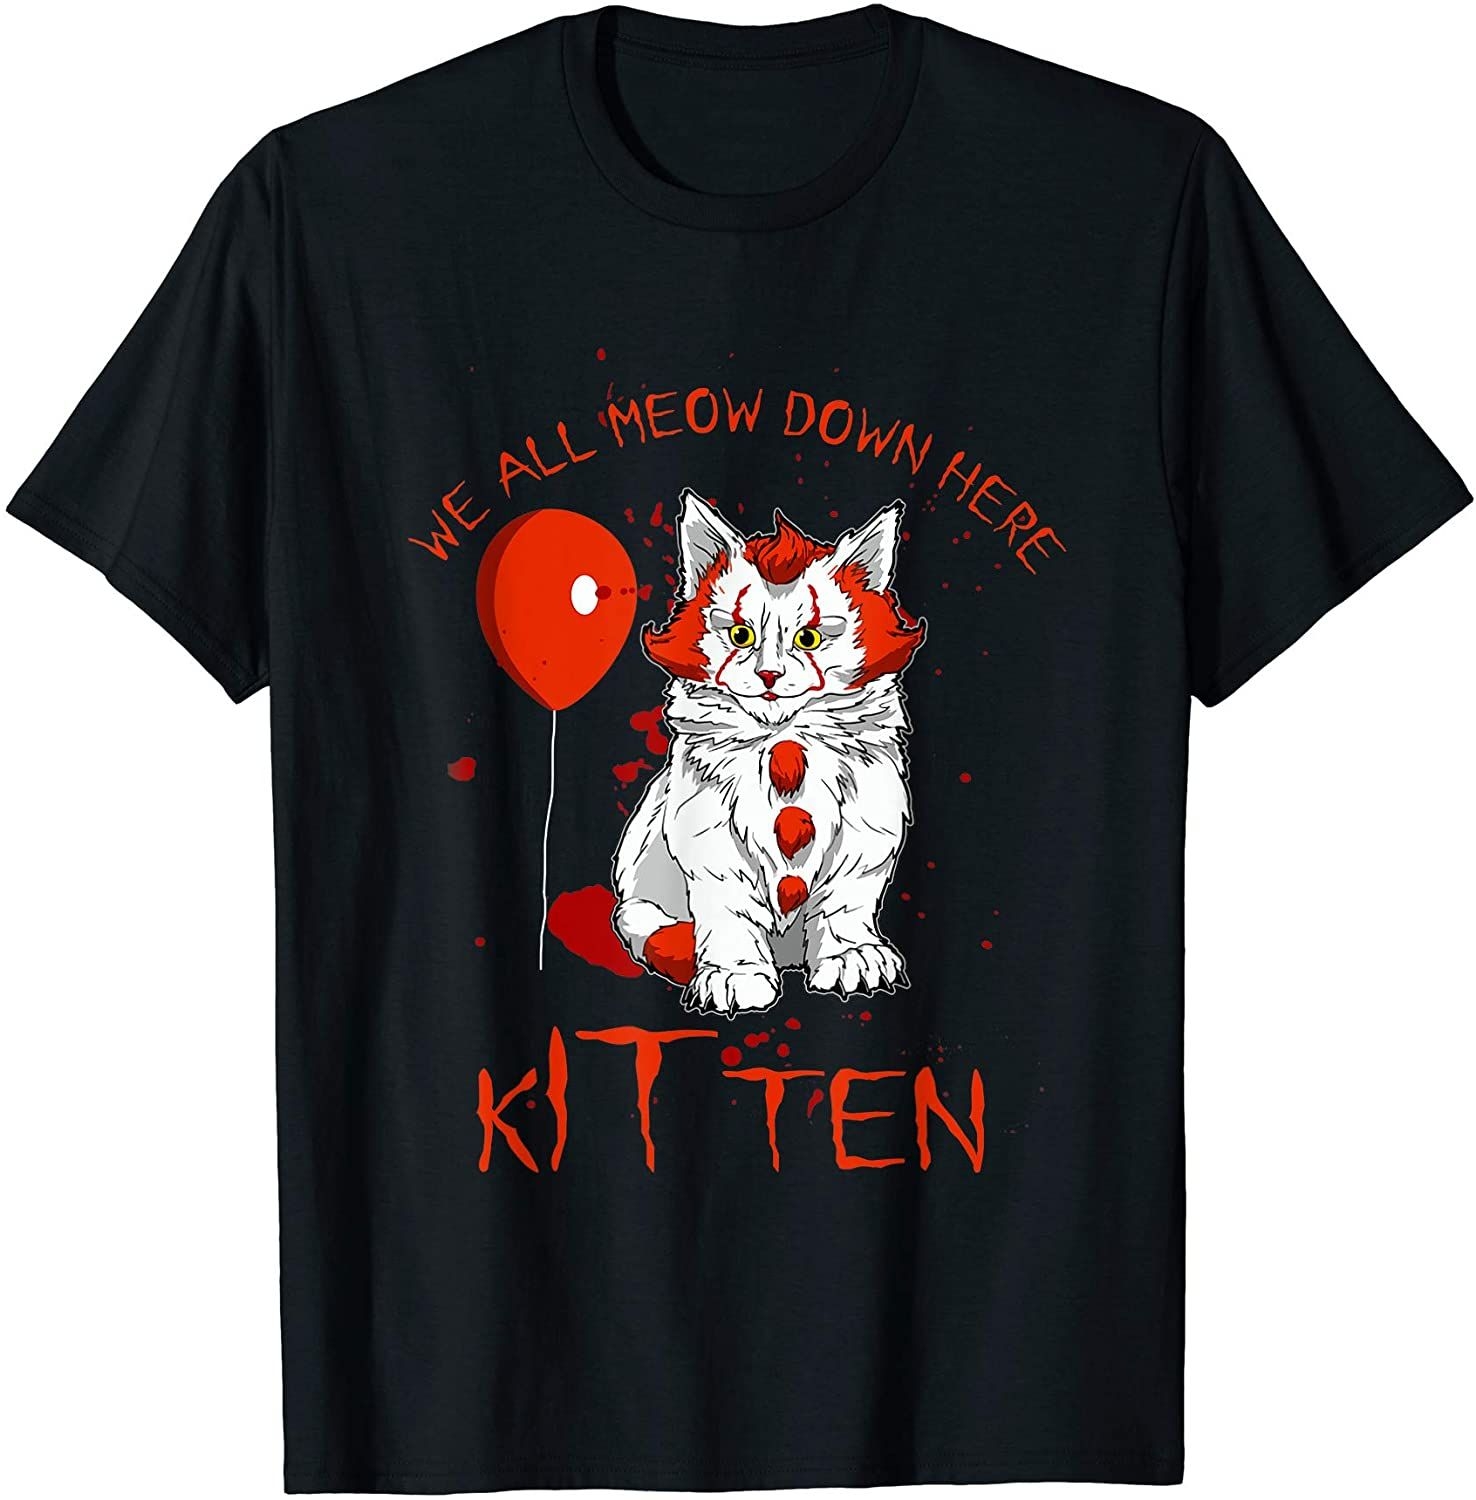 We All Meow Down Here Clown Cat Kitten Funny Halloween Gift T Shirt In 2020 Halloween Funny Shirts Kittens Funny